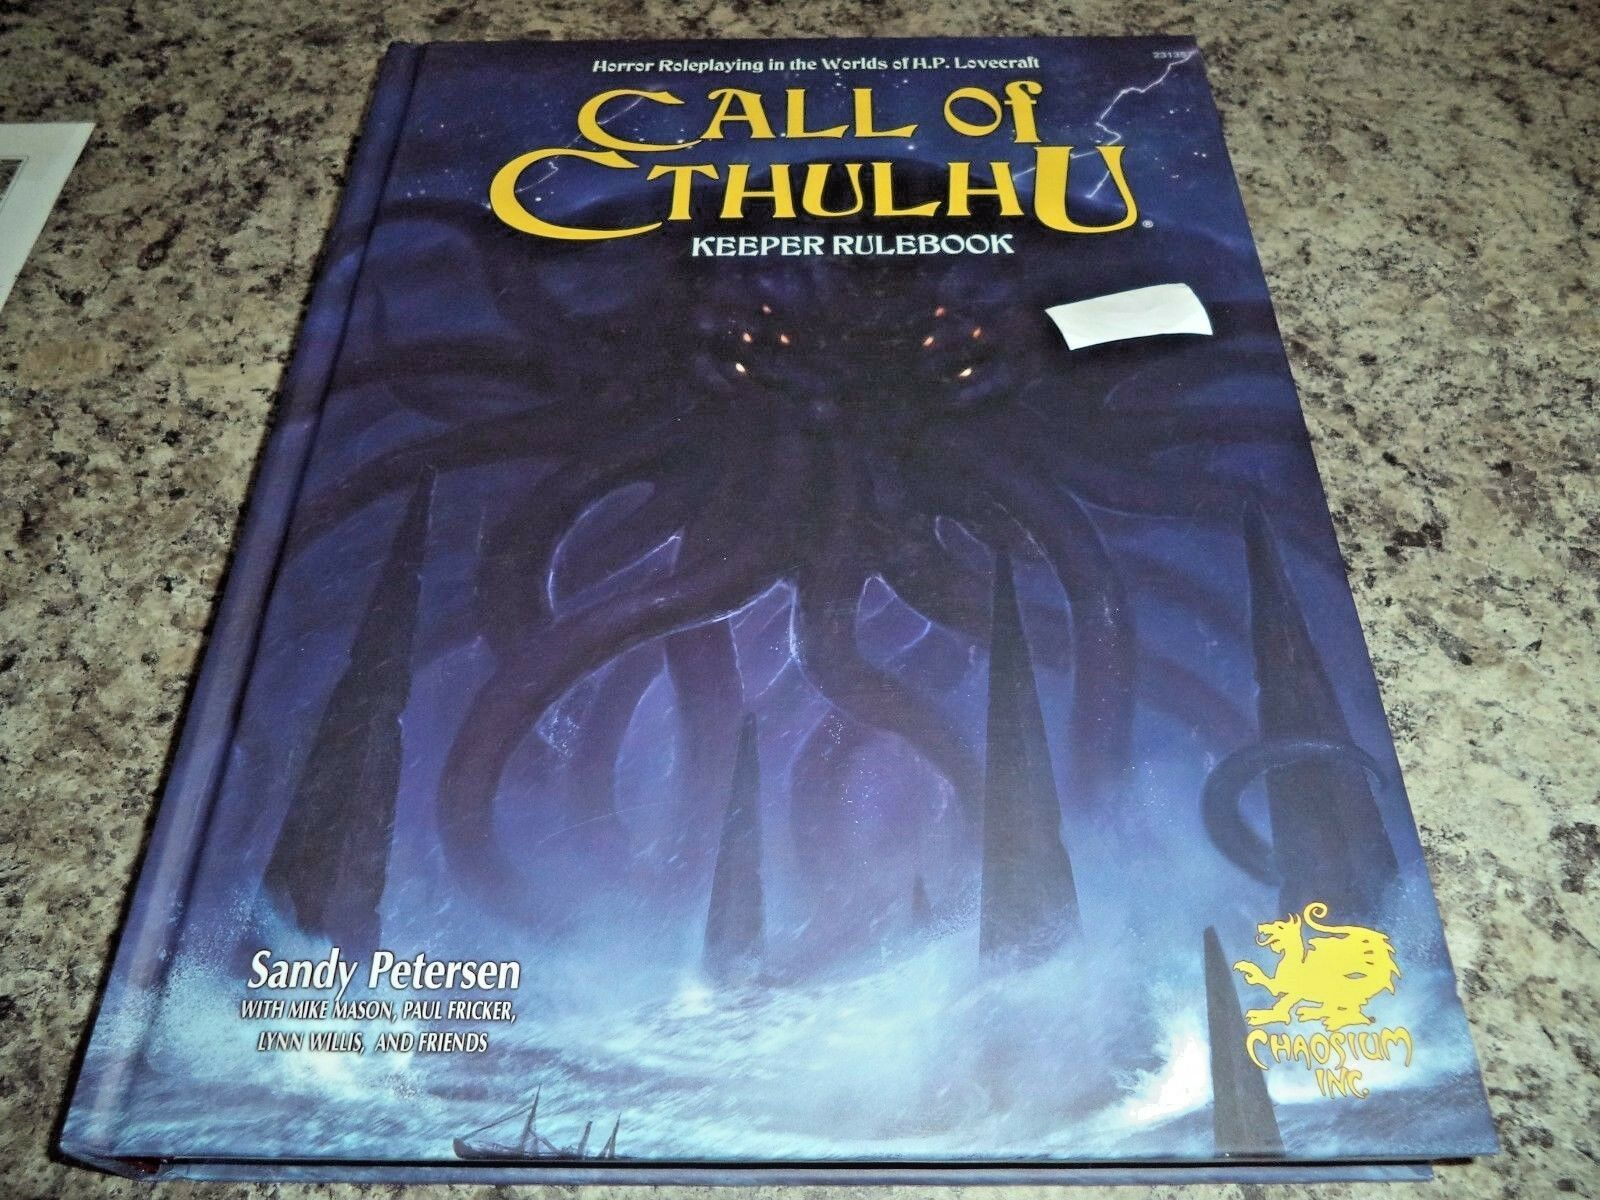 Call Of Cthulhu Custode Rulebook 7  Edizione Chaosium Roleplaying Rpg Book Nuovo